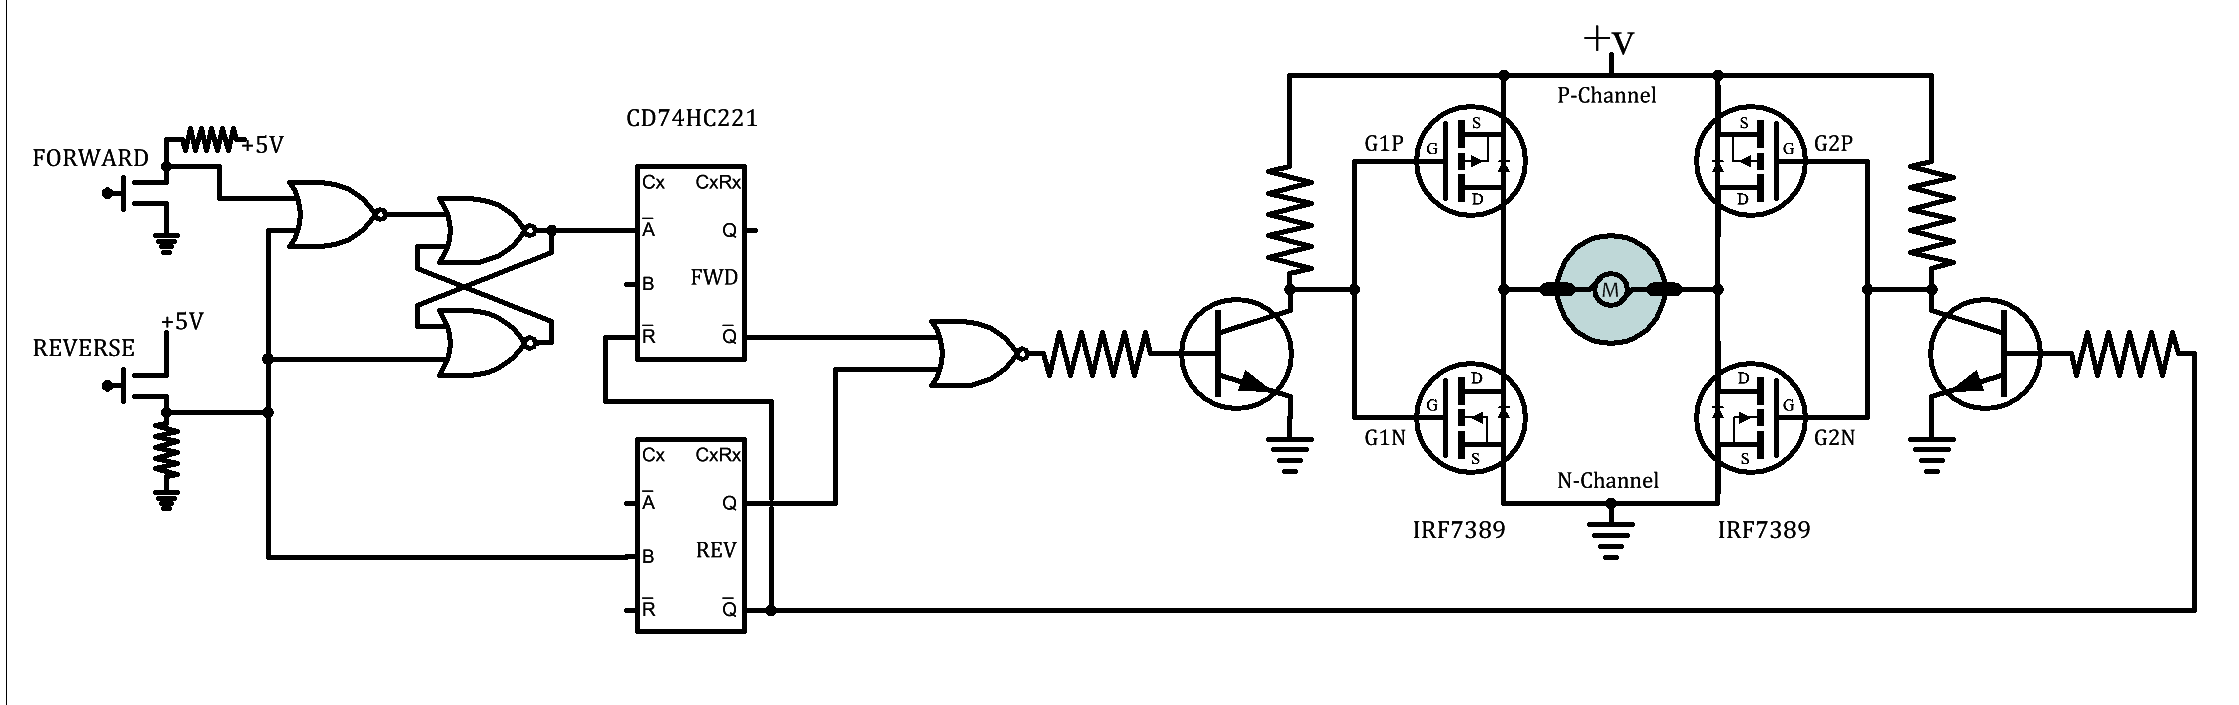 Results Page 577 About 0 30 Volts Searching Circuits At Supply Smps Schematic Diagram Circuit Images Frompo Simple Willing To Pay For Full Design